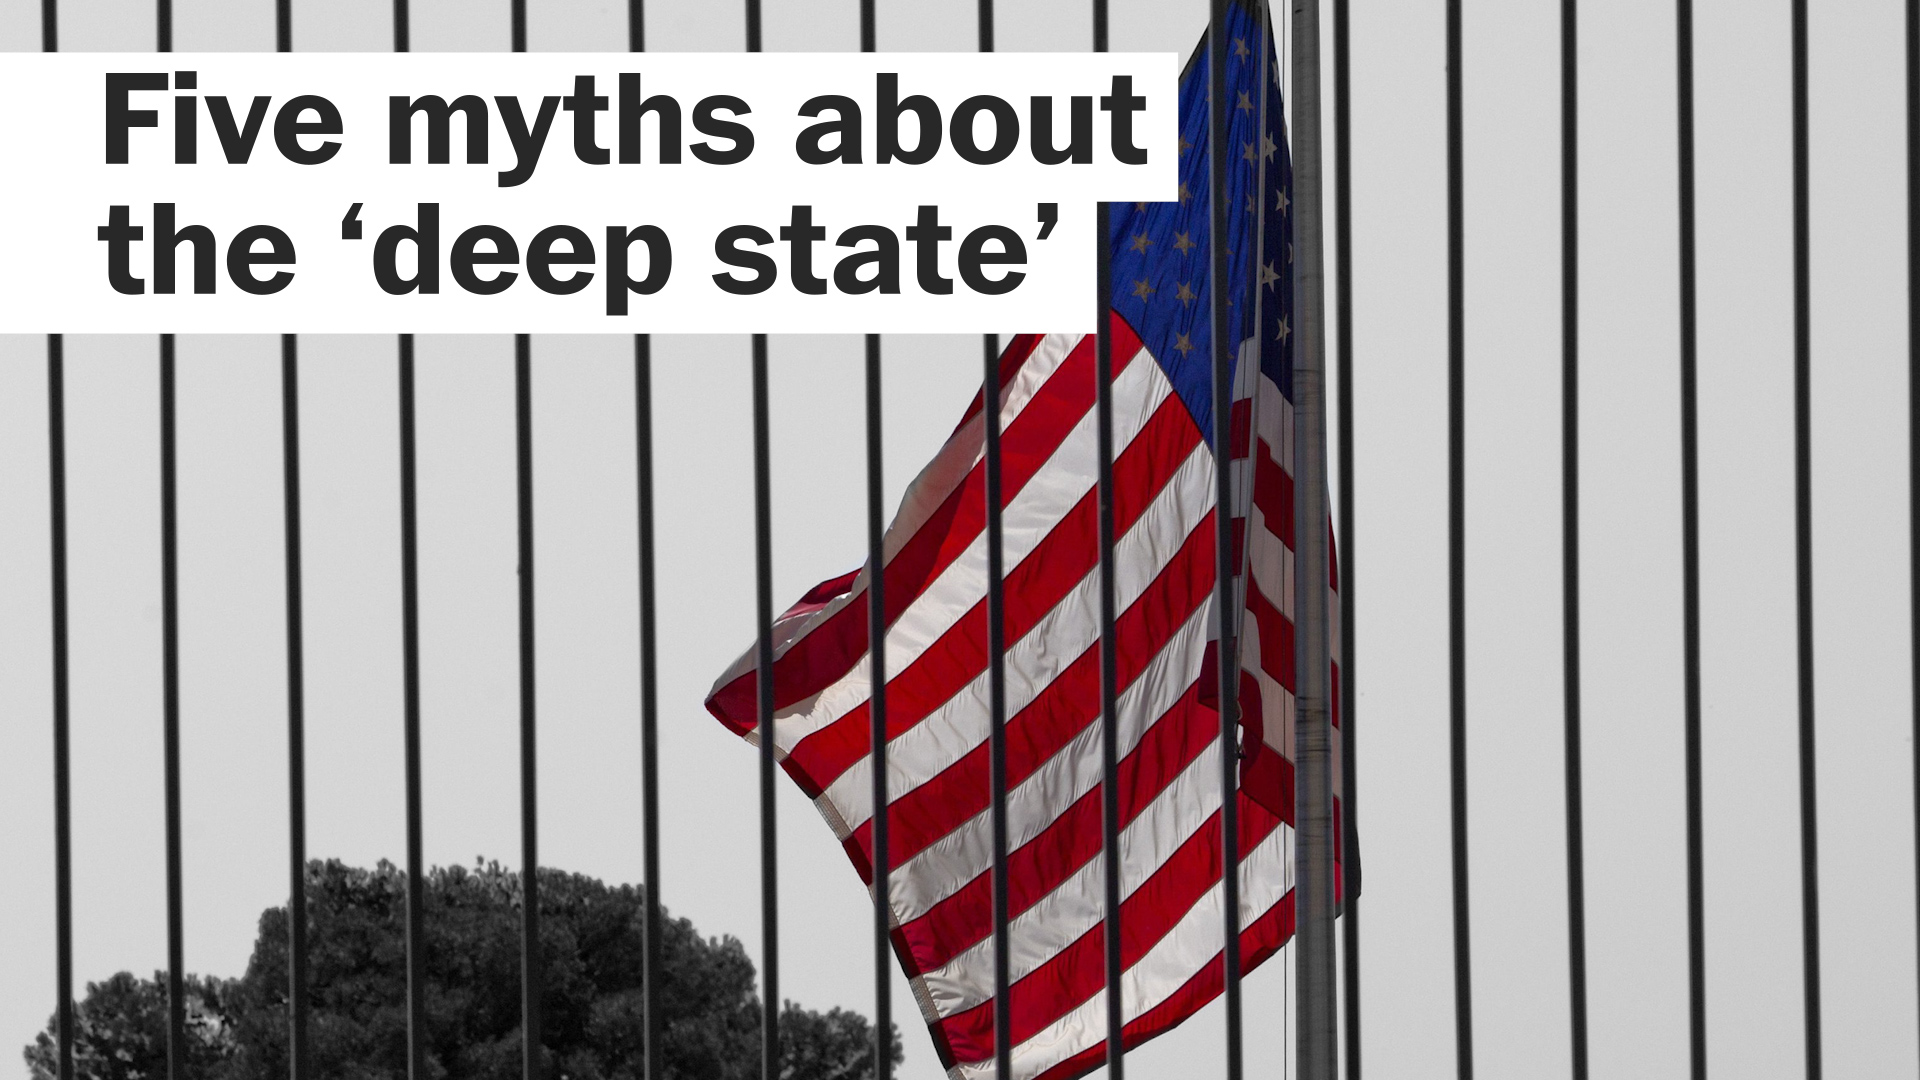 Deep state in the United States